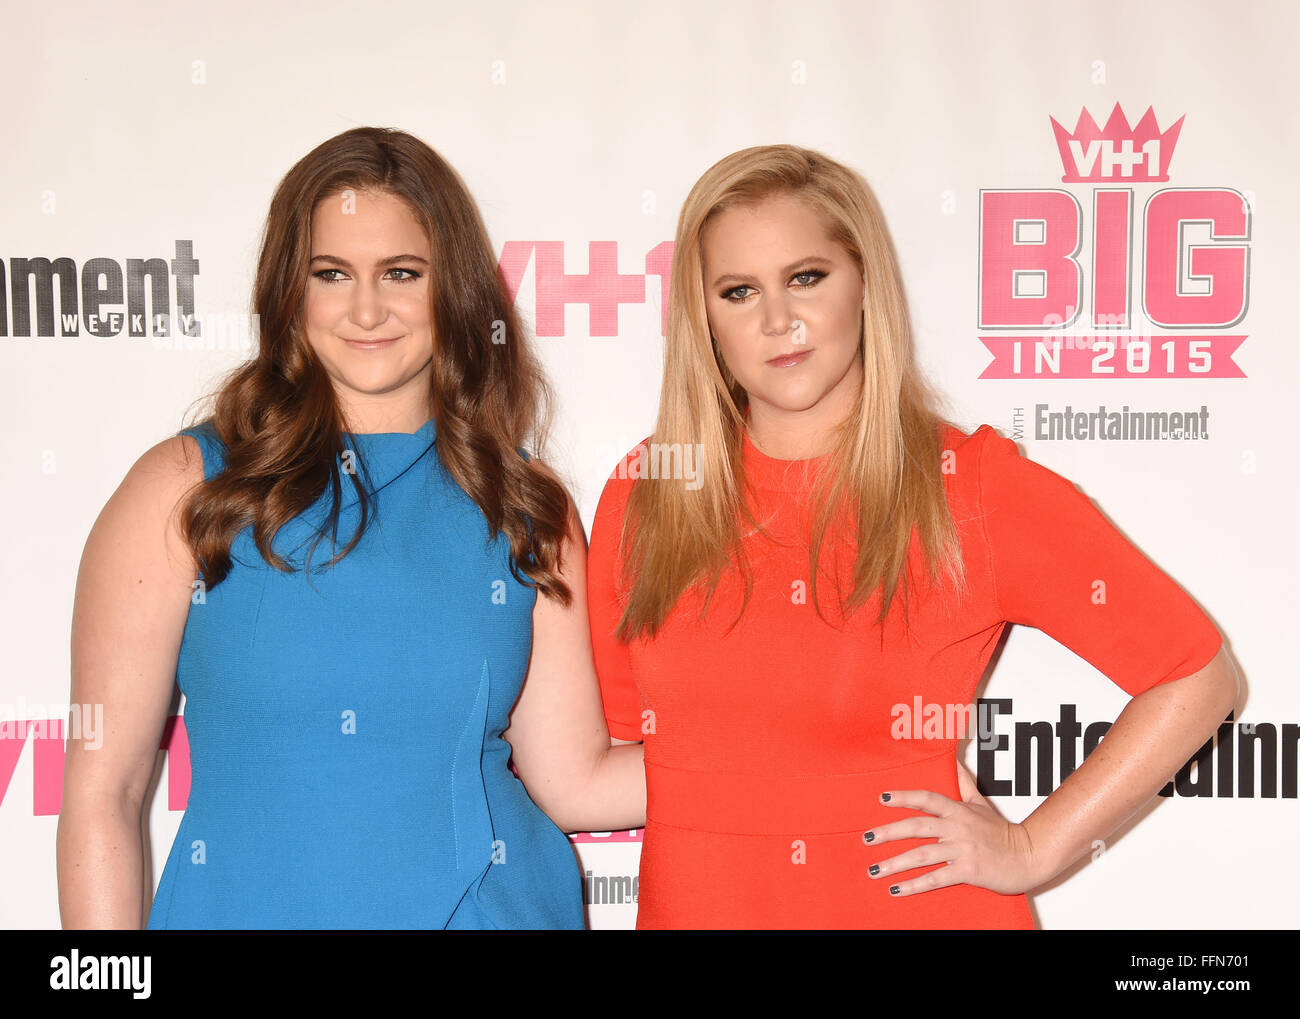 Actress/comedian Amy Schumer (R) and sister Kimberly Schumer attend VH1 Big In 2015 With Entertainment Weekly Awards Stock Photo